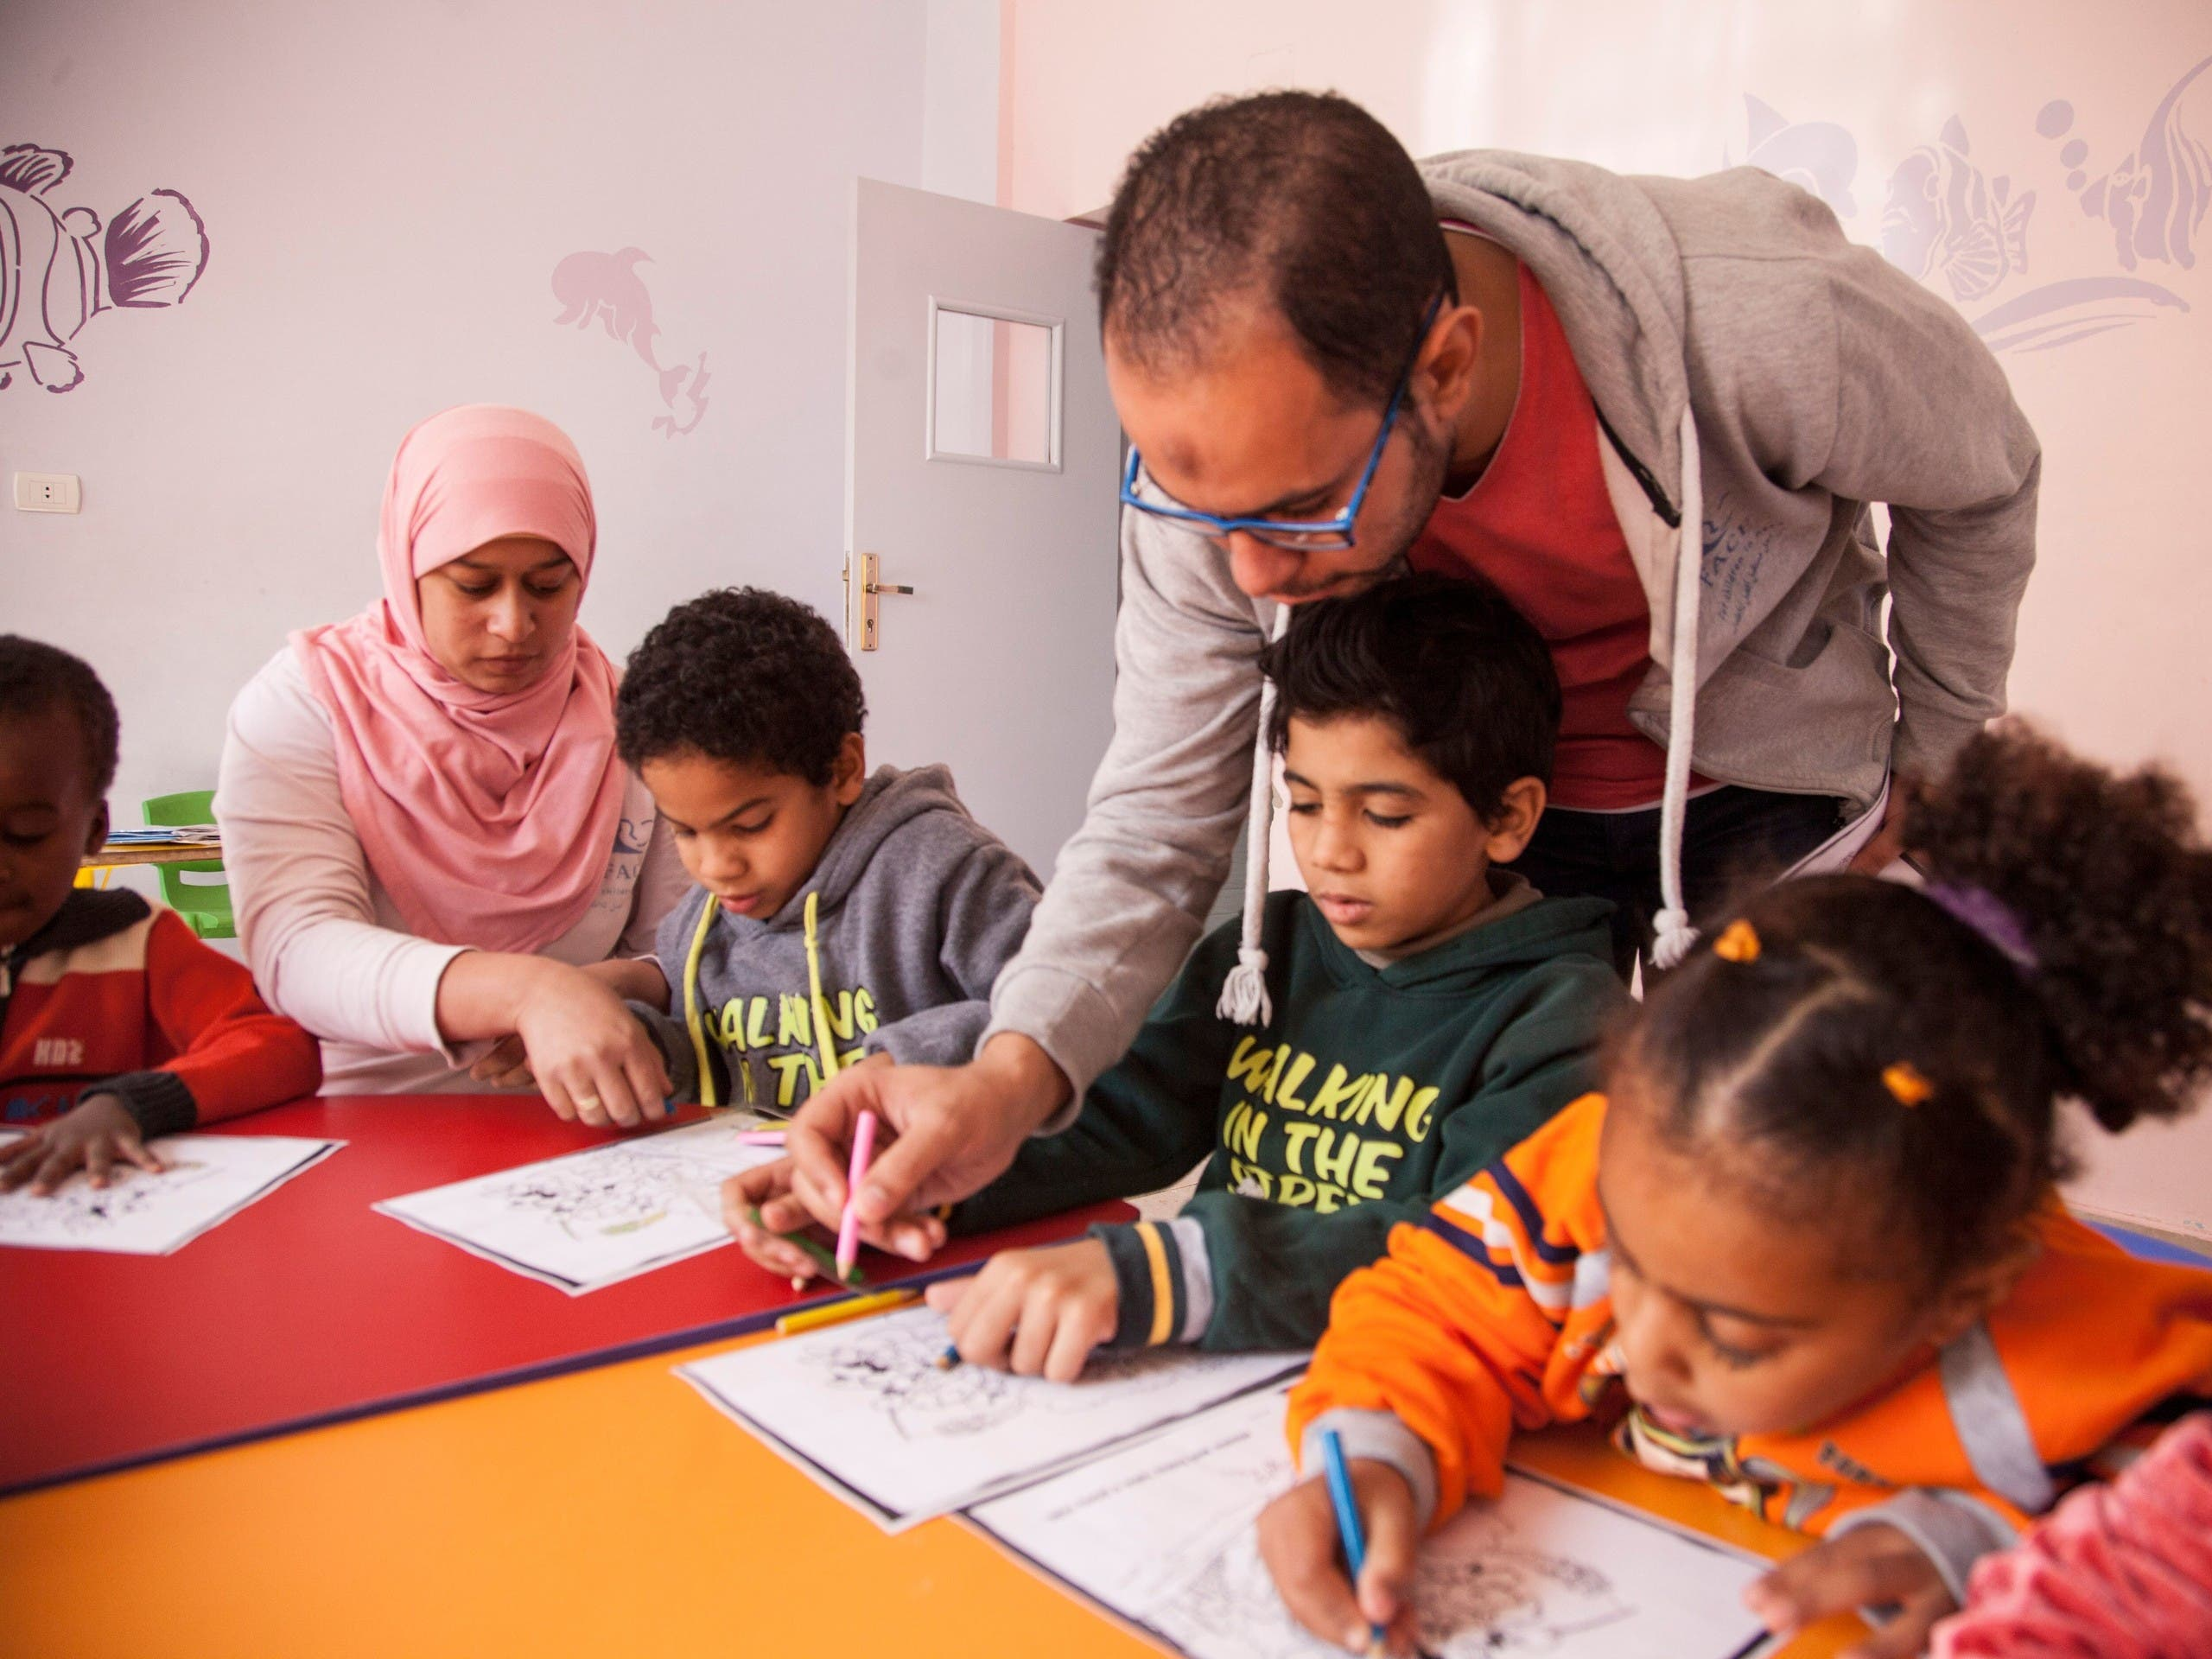 Egypt: How belgium lady help egyption kids for education